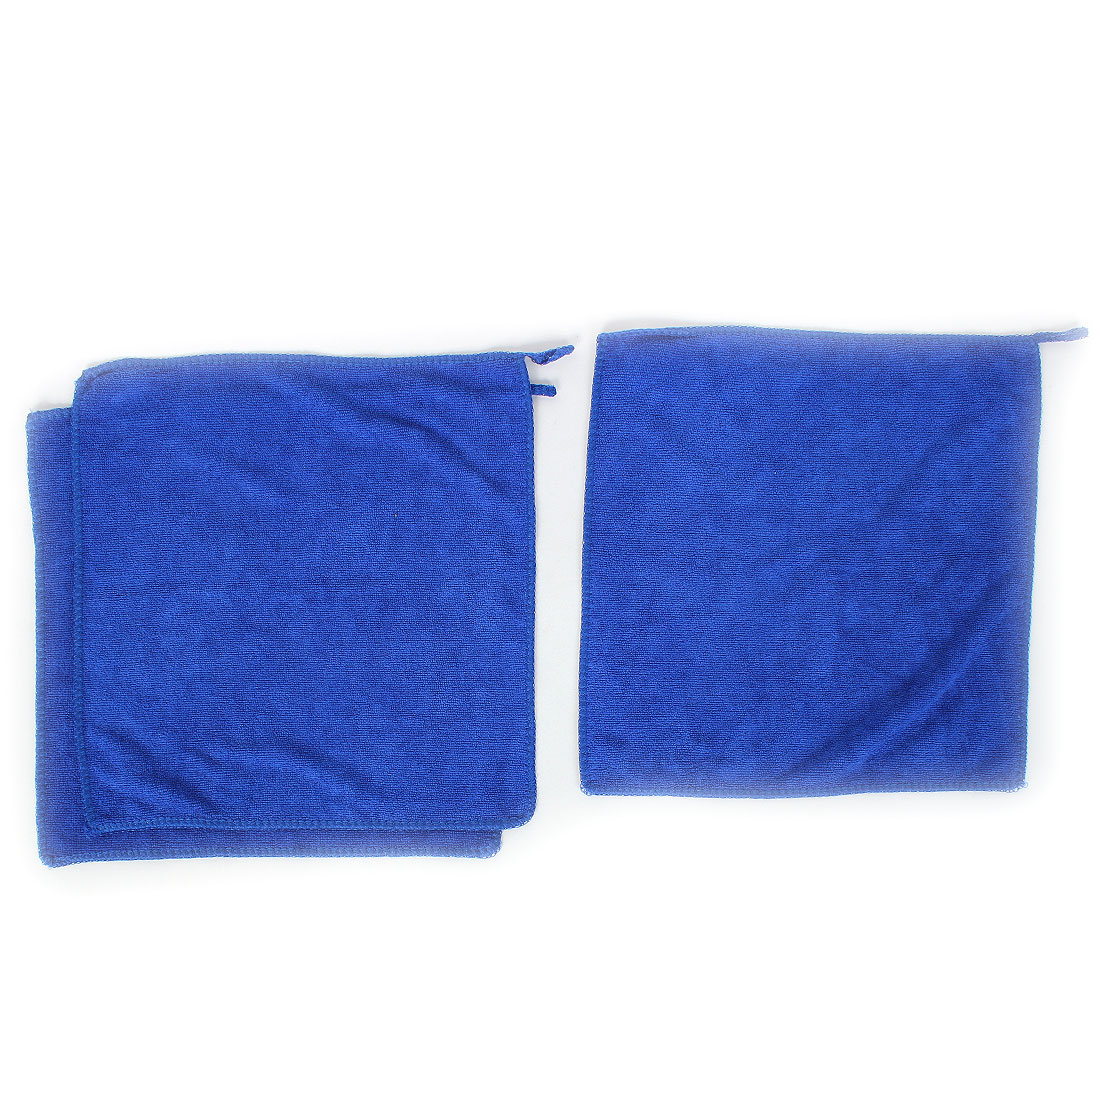 Household Water Absorbent Drying Towel Washcloth 30cm x 30cm Blue 3pcs